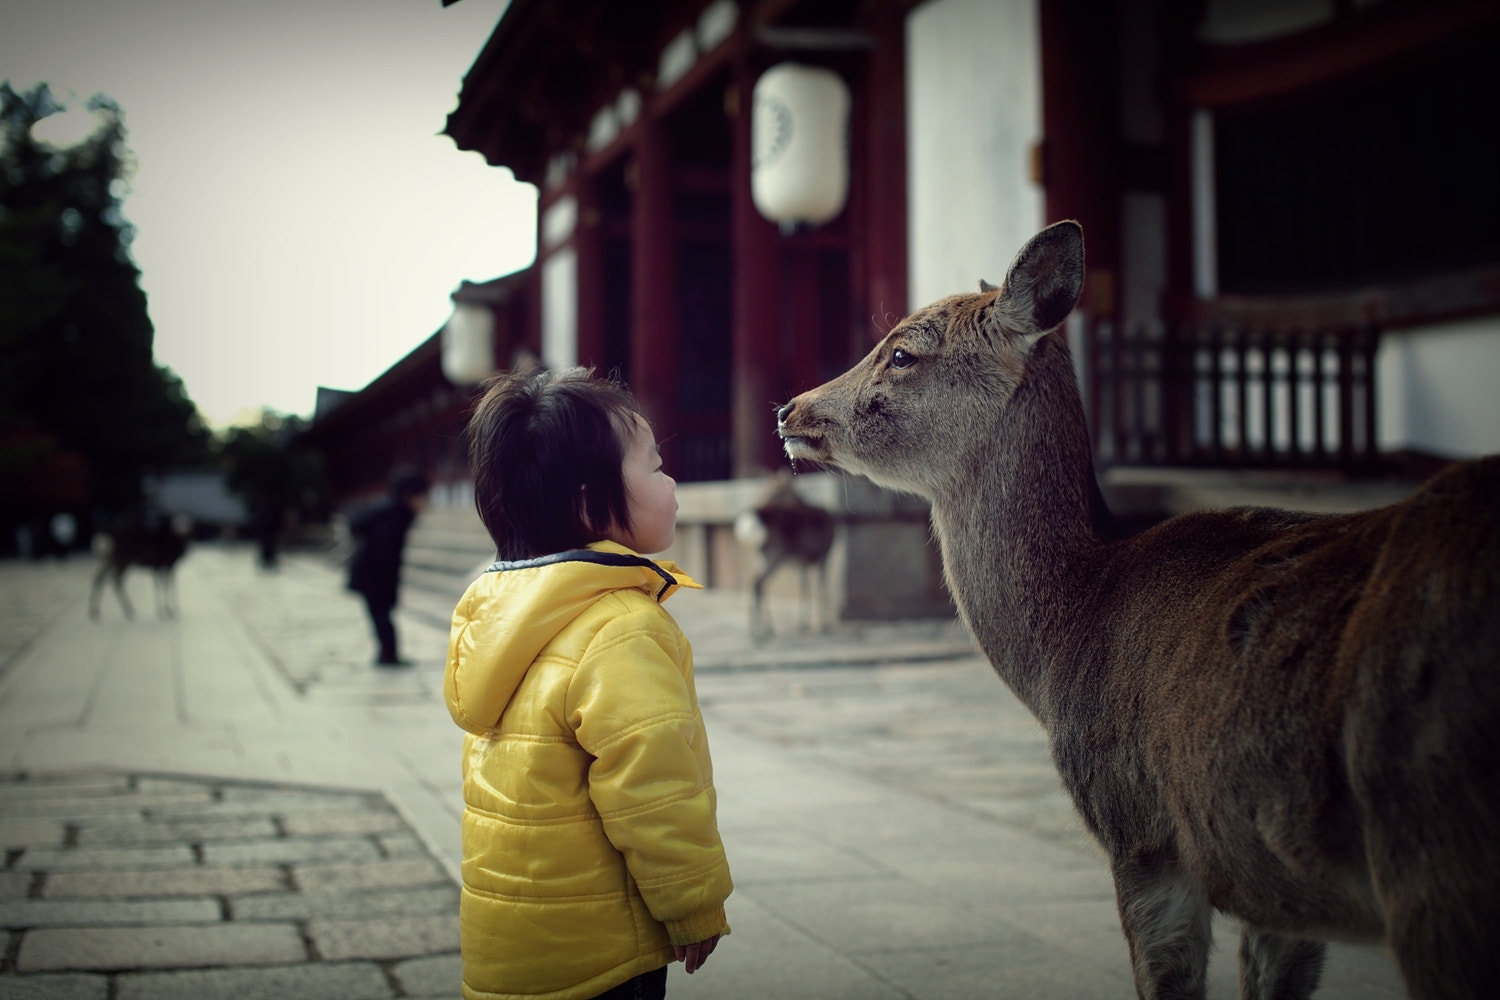 Photograph Nice to meet you, Ms. deer. by MASATO T on 500px